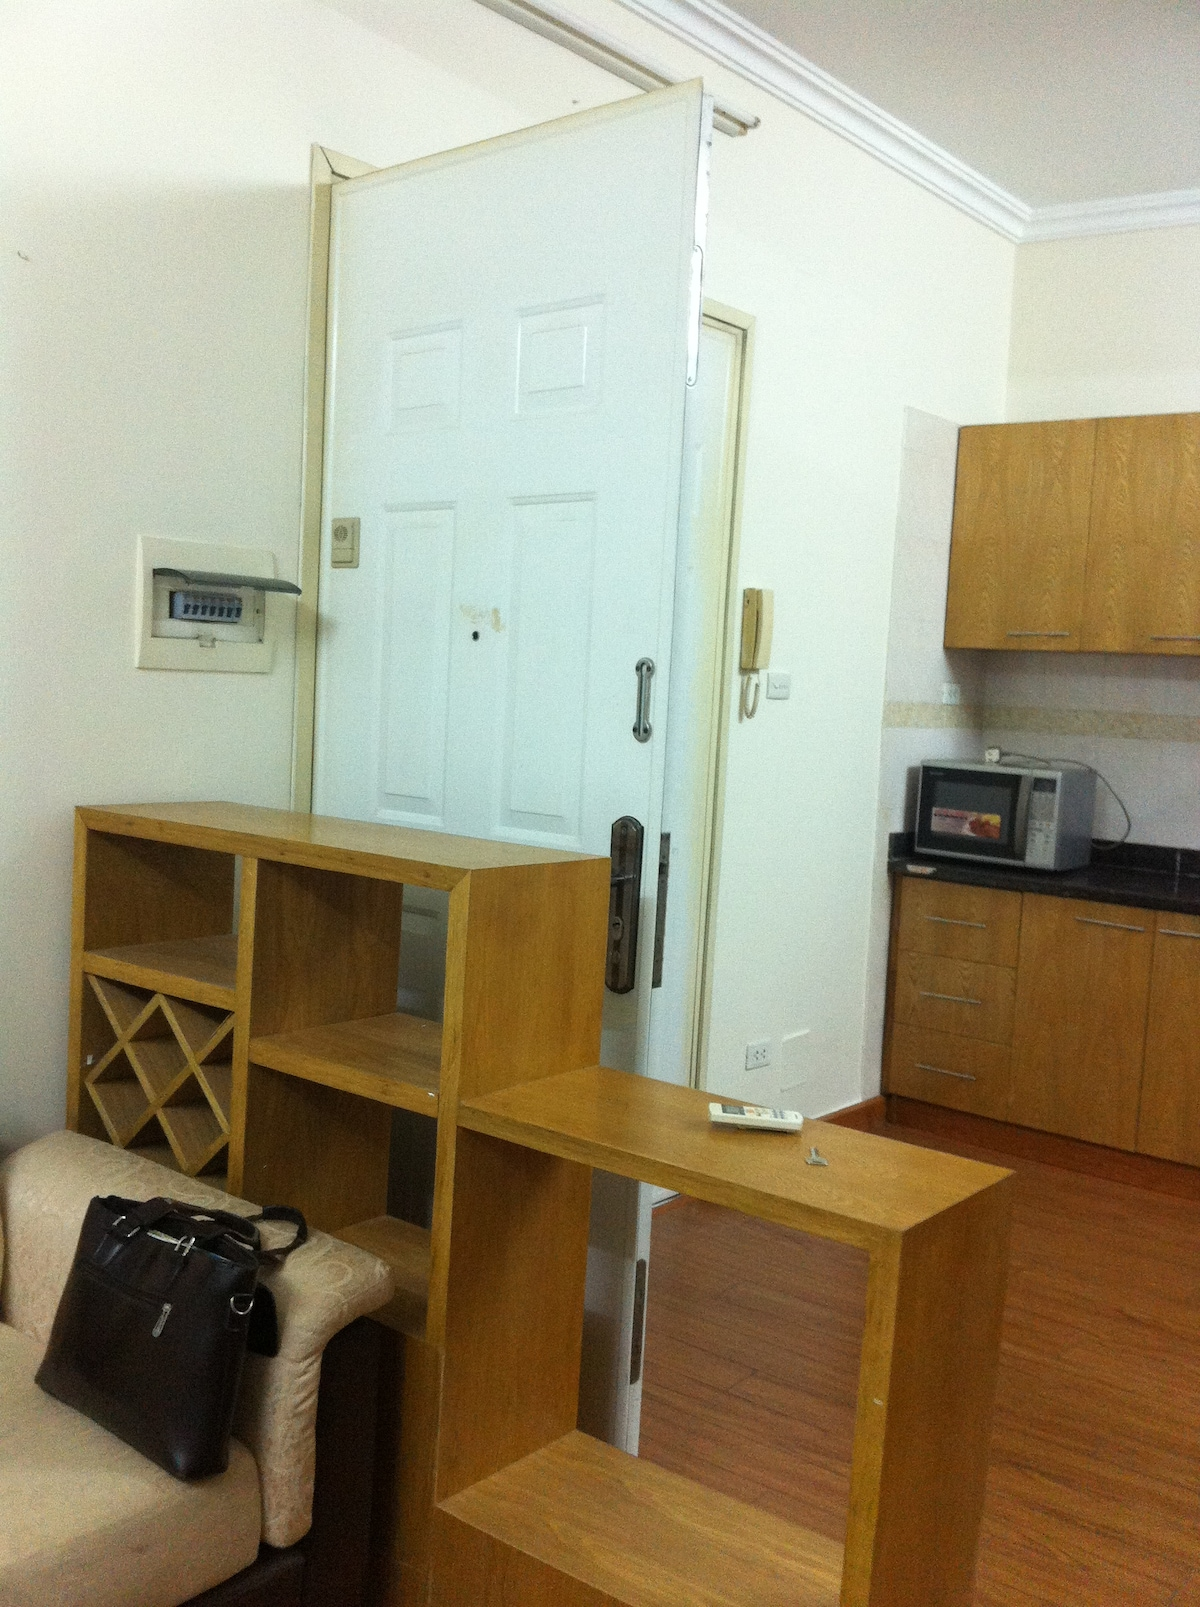 Ms Hien apartment 3pax stay